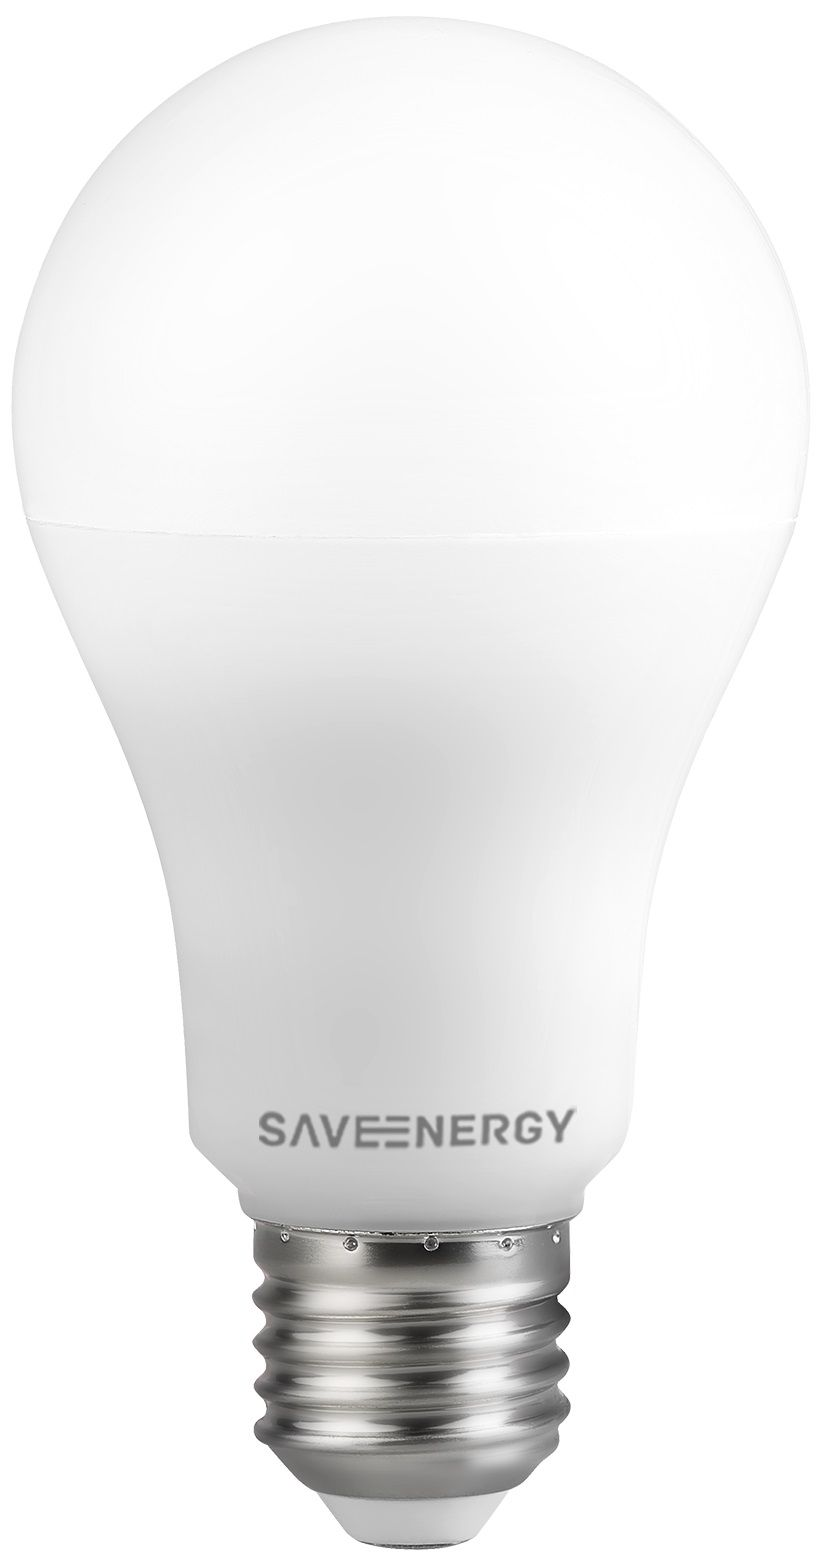 LÂMPADA LED BULBO A65 11W 2700K DIMERIZÁVEL SAVE ENERGY SE-215.1443